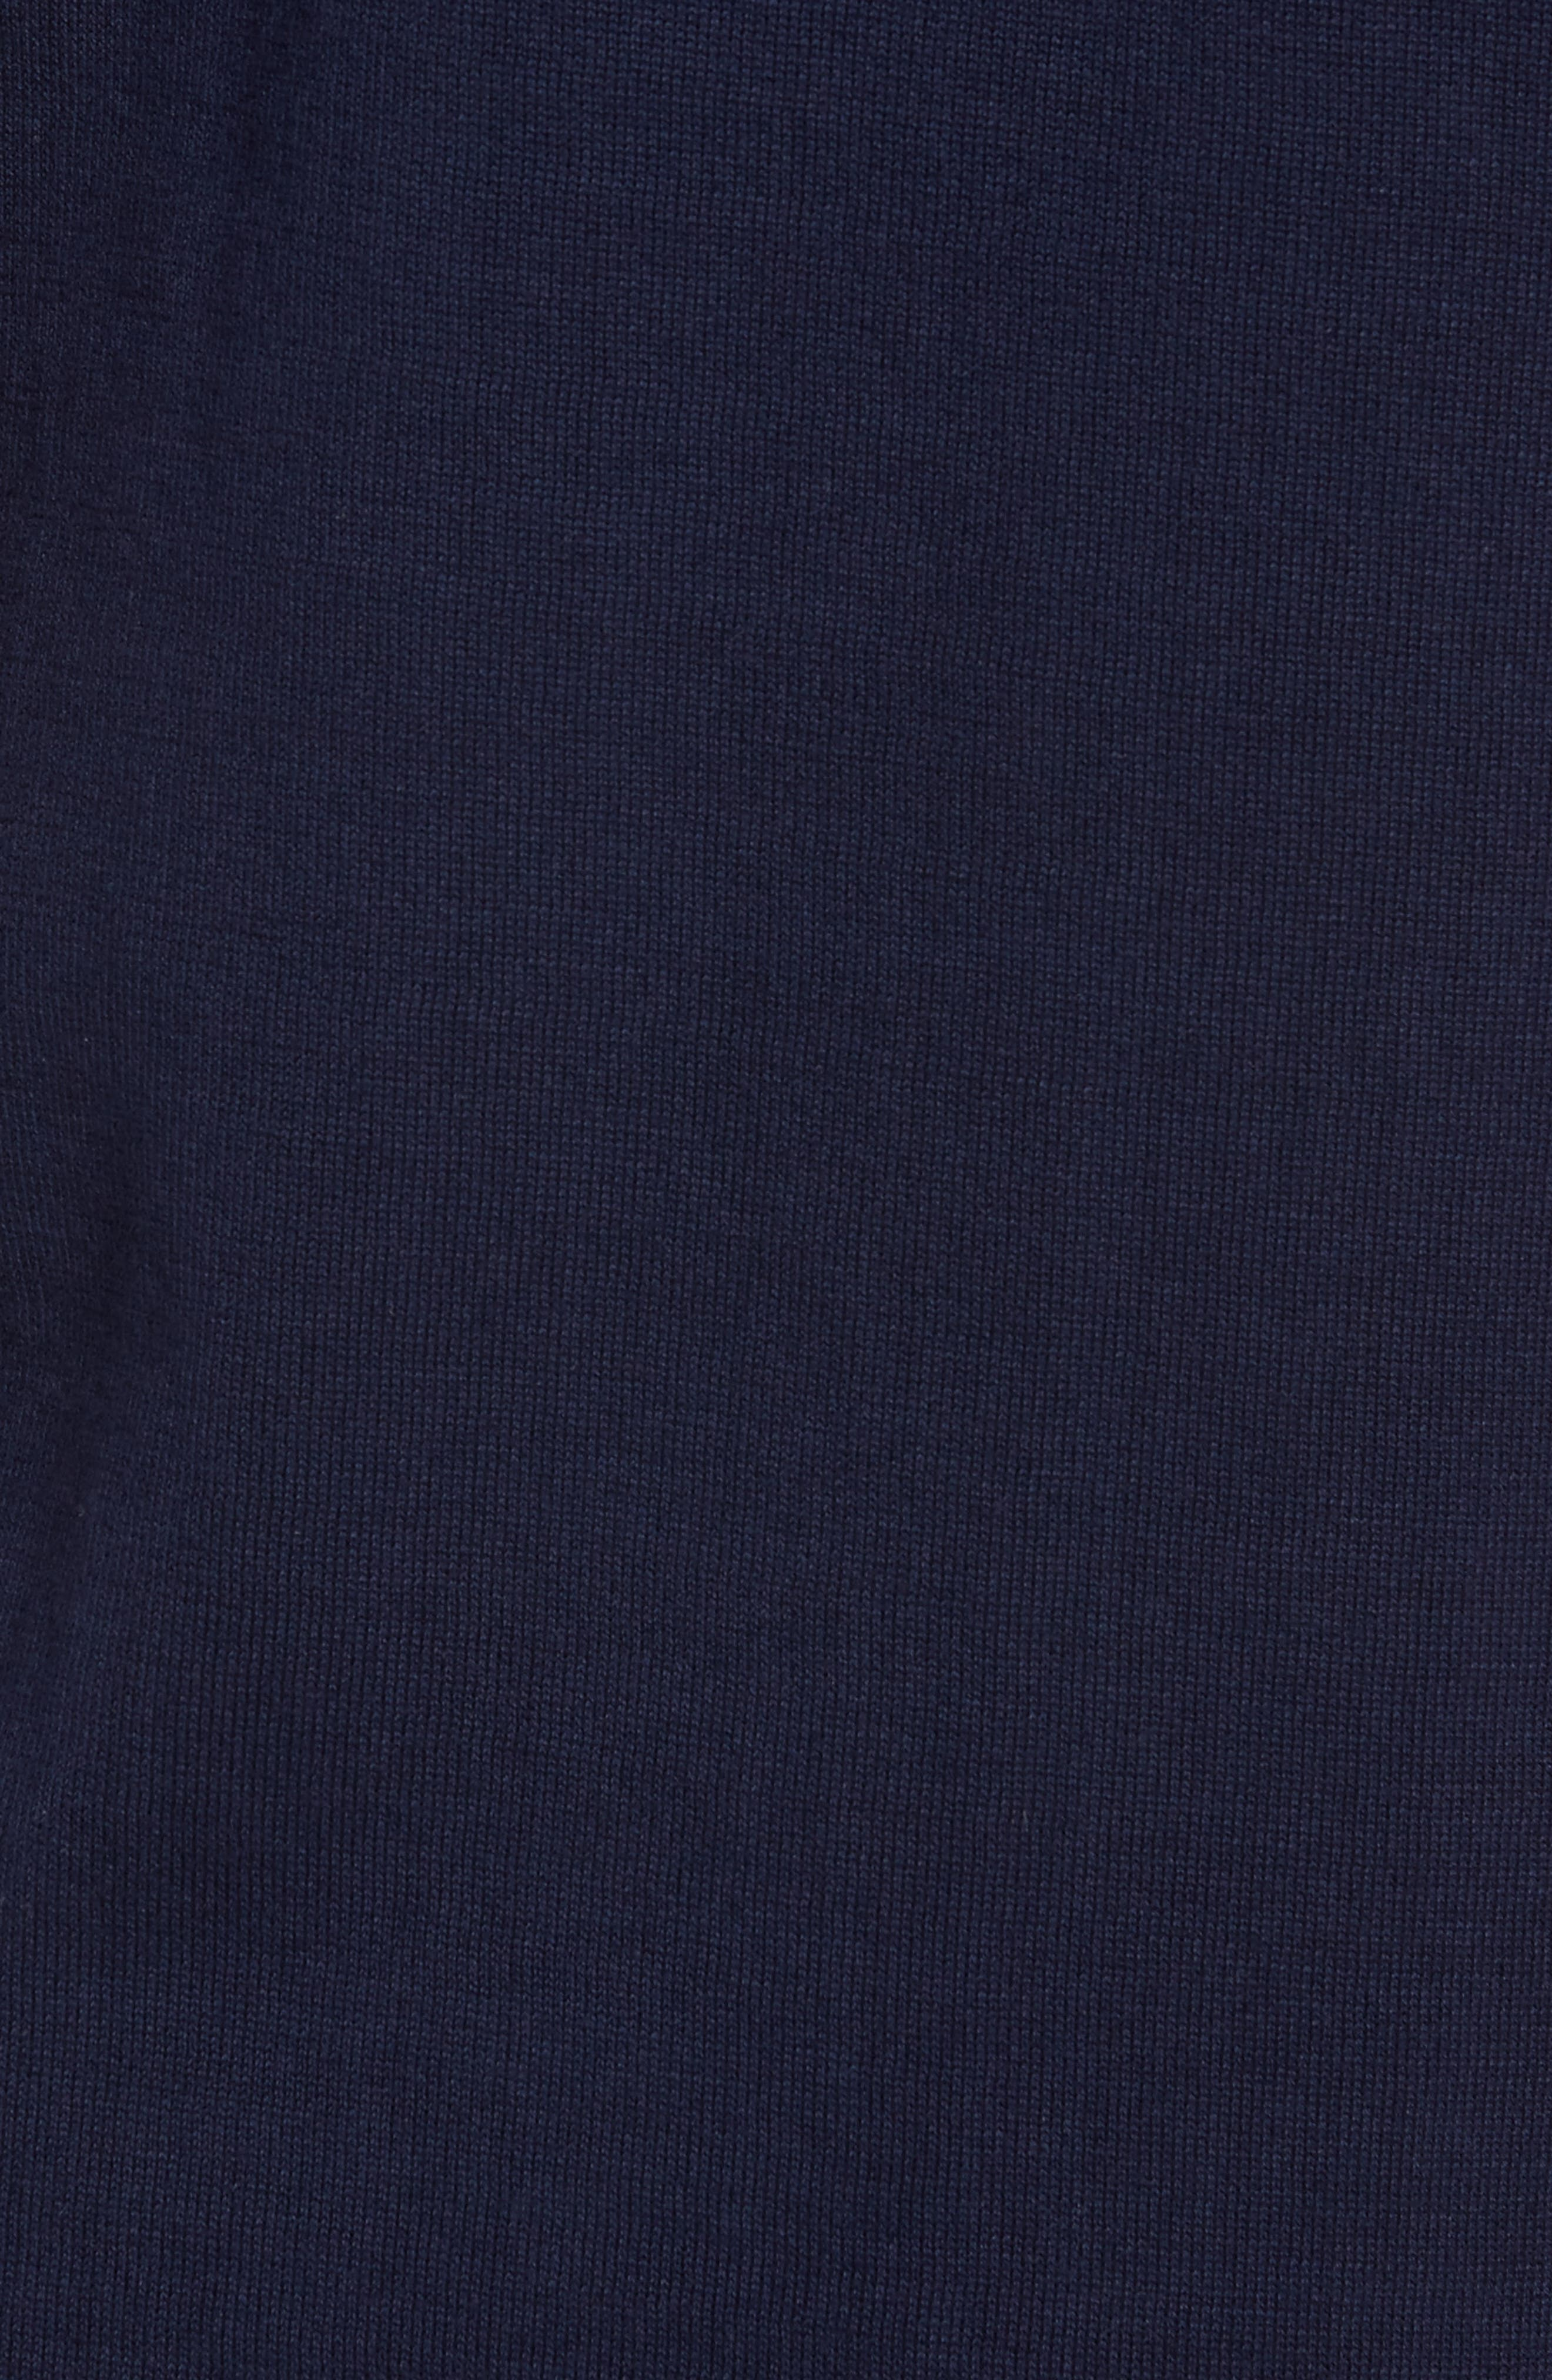 Sweater Polo,                             Alternate thumbnail 15, color,